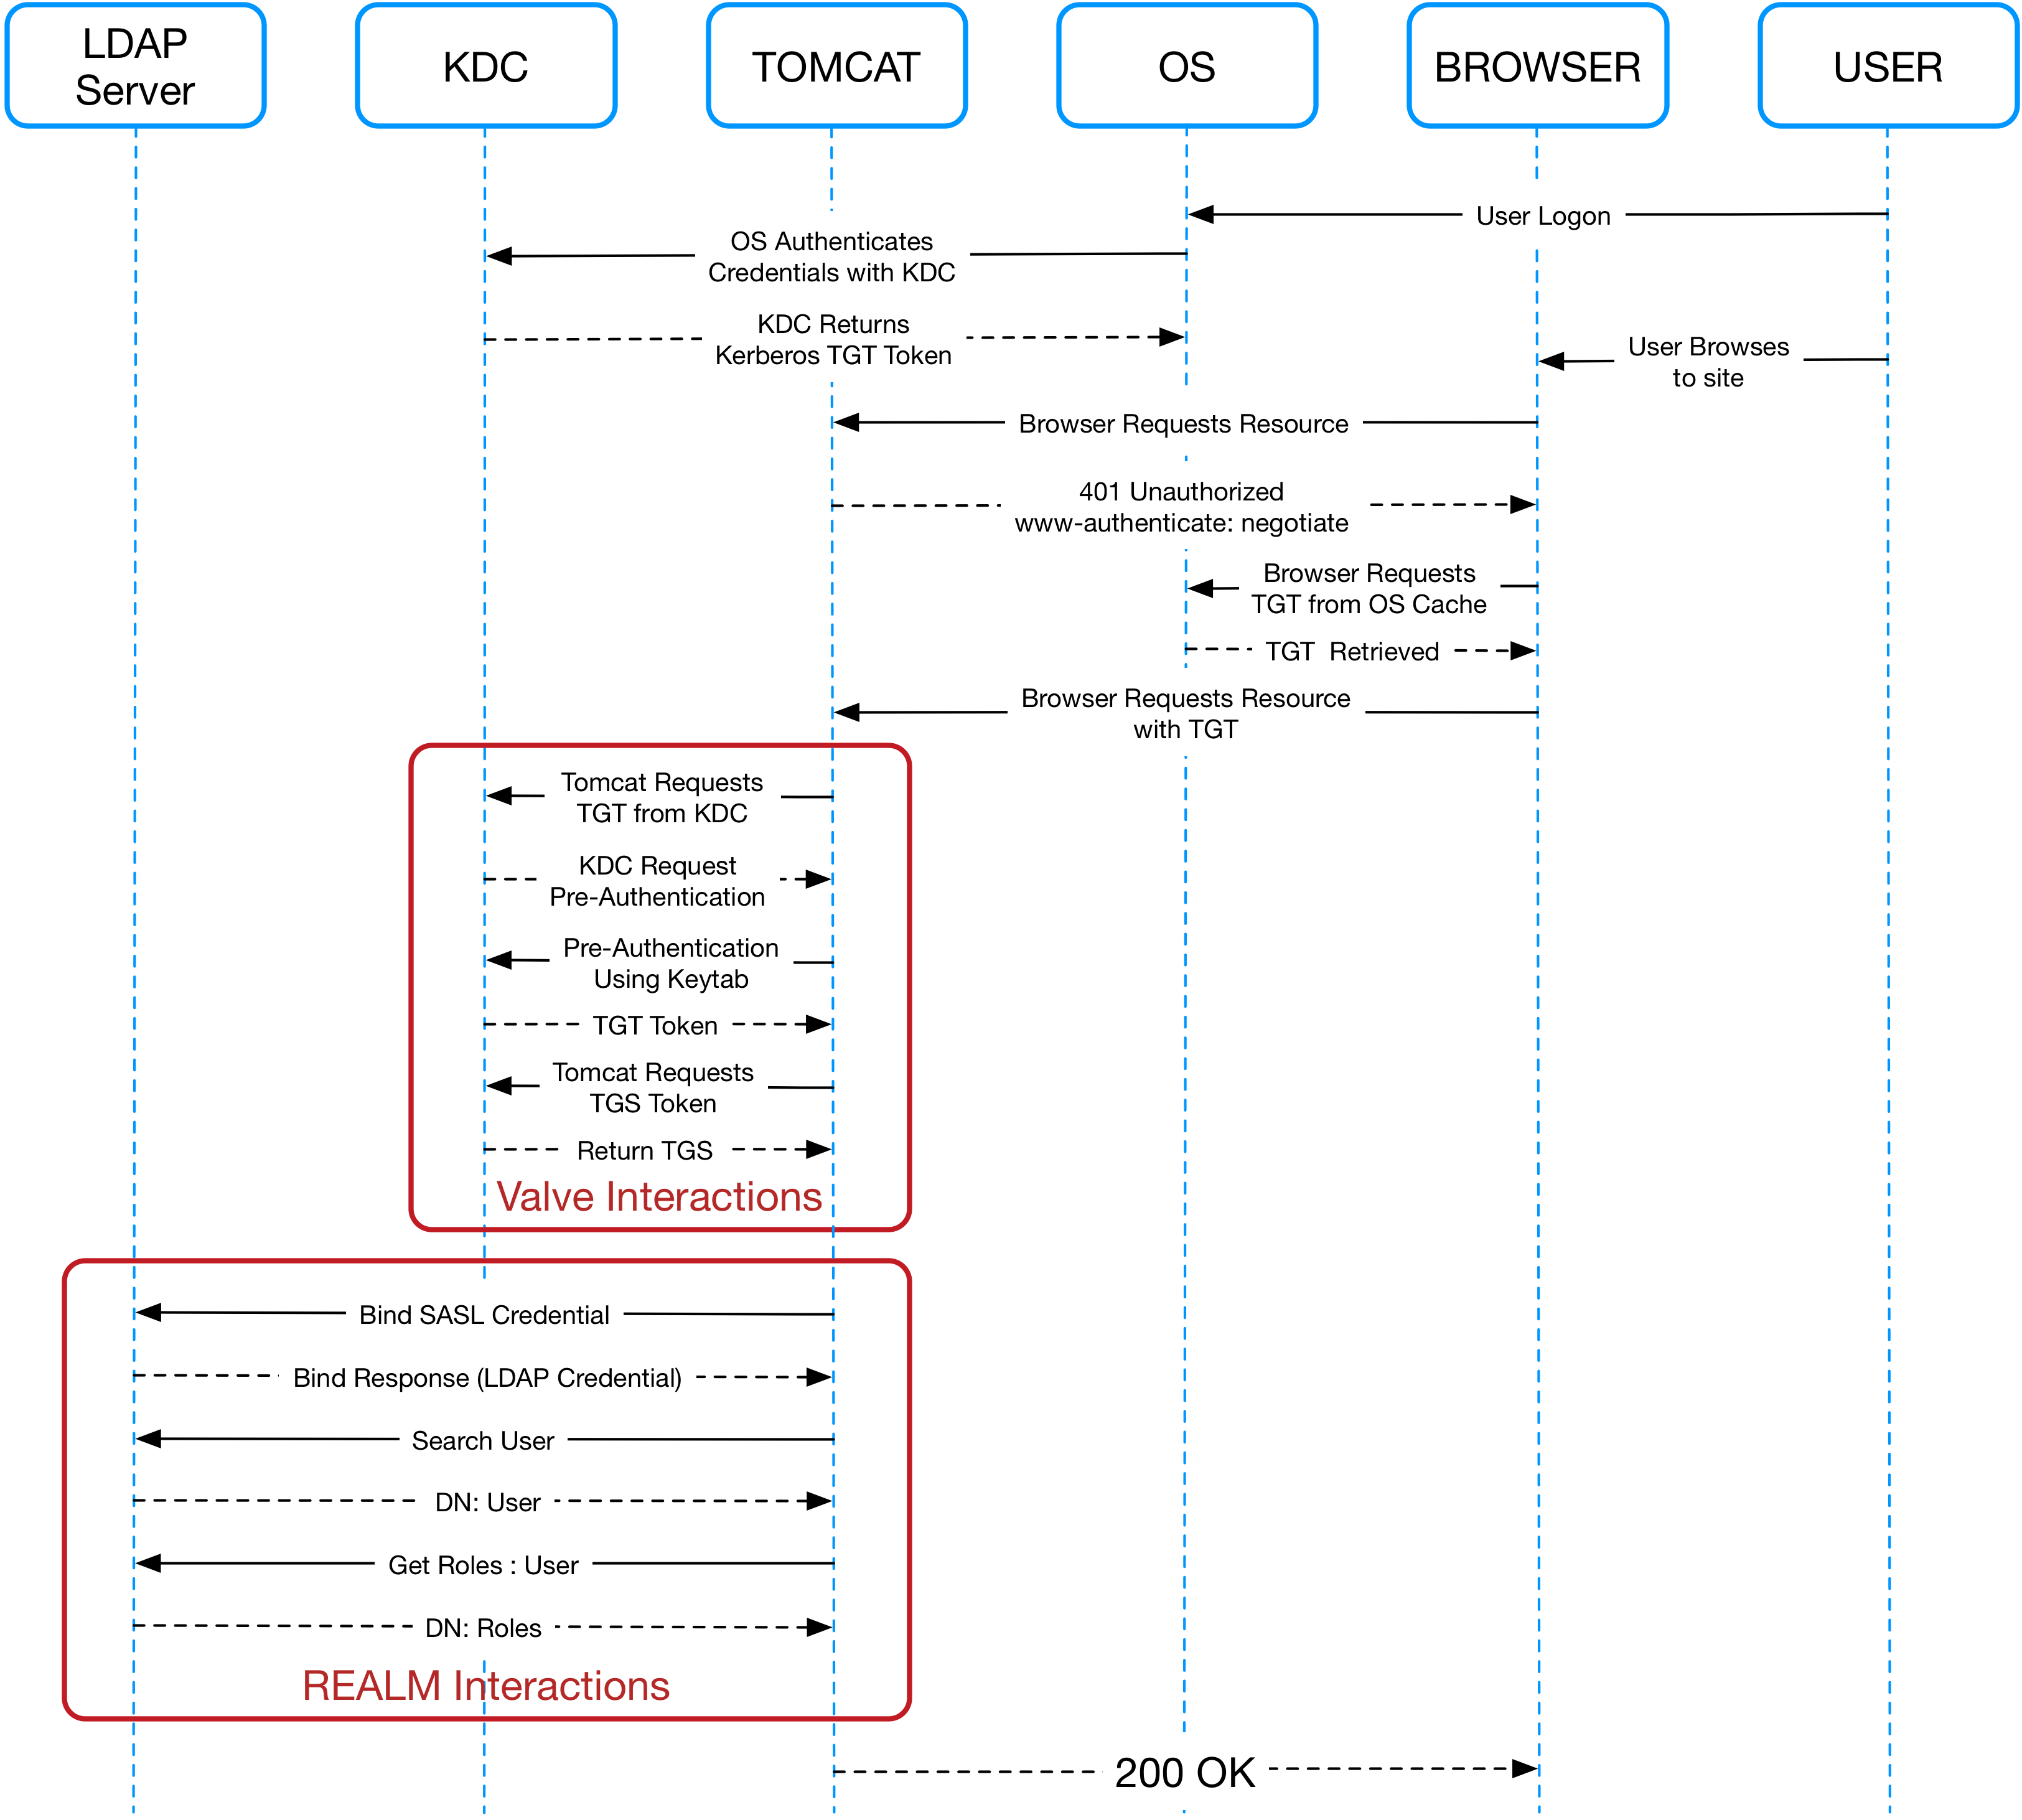 SPNEGO Sequence Diagram